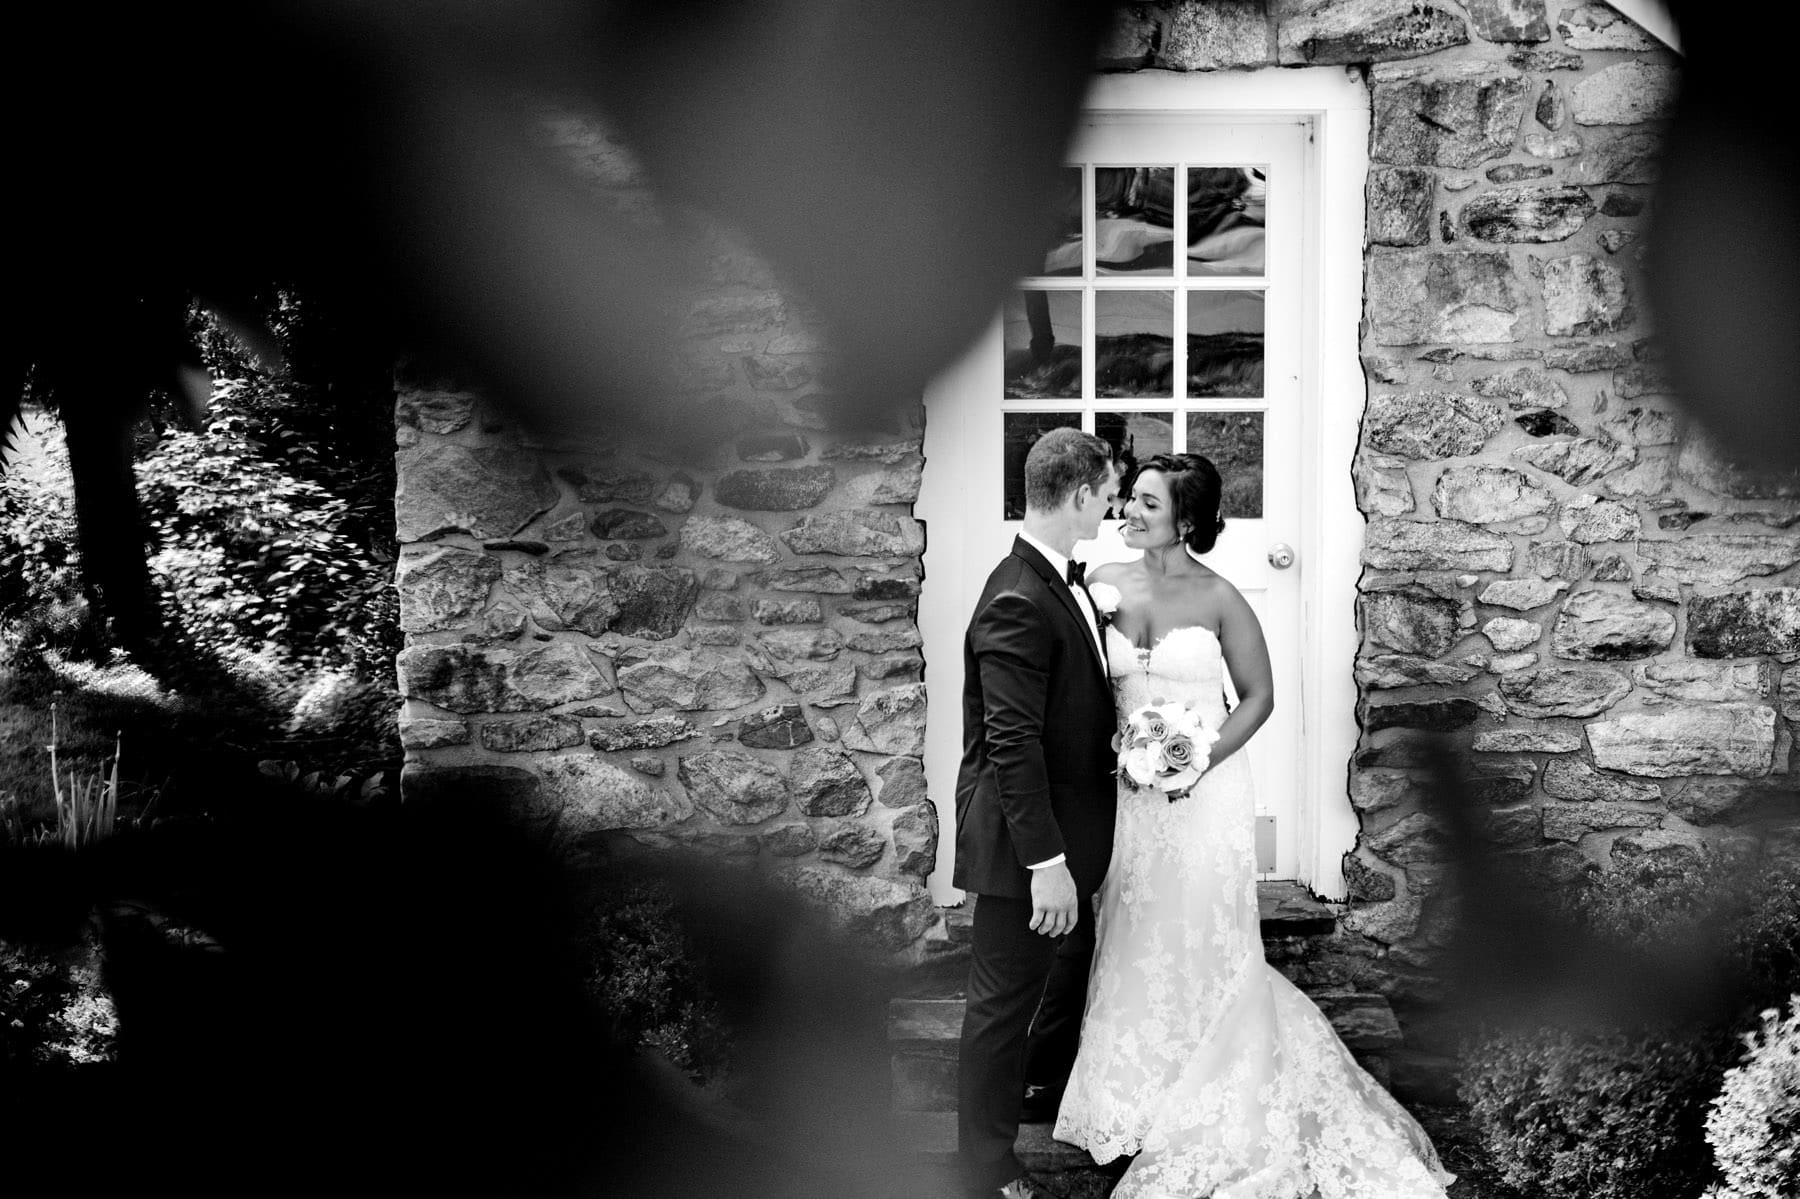 bride and groom at The Farmhouse school house on their wedding day